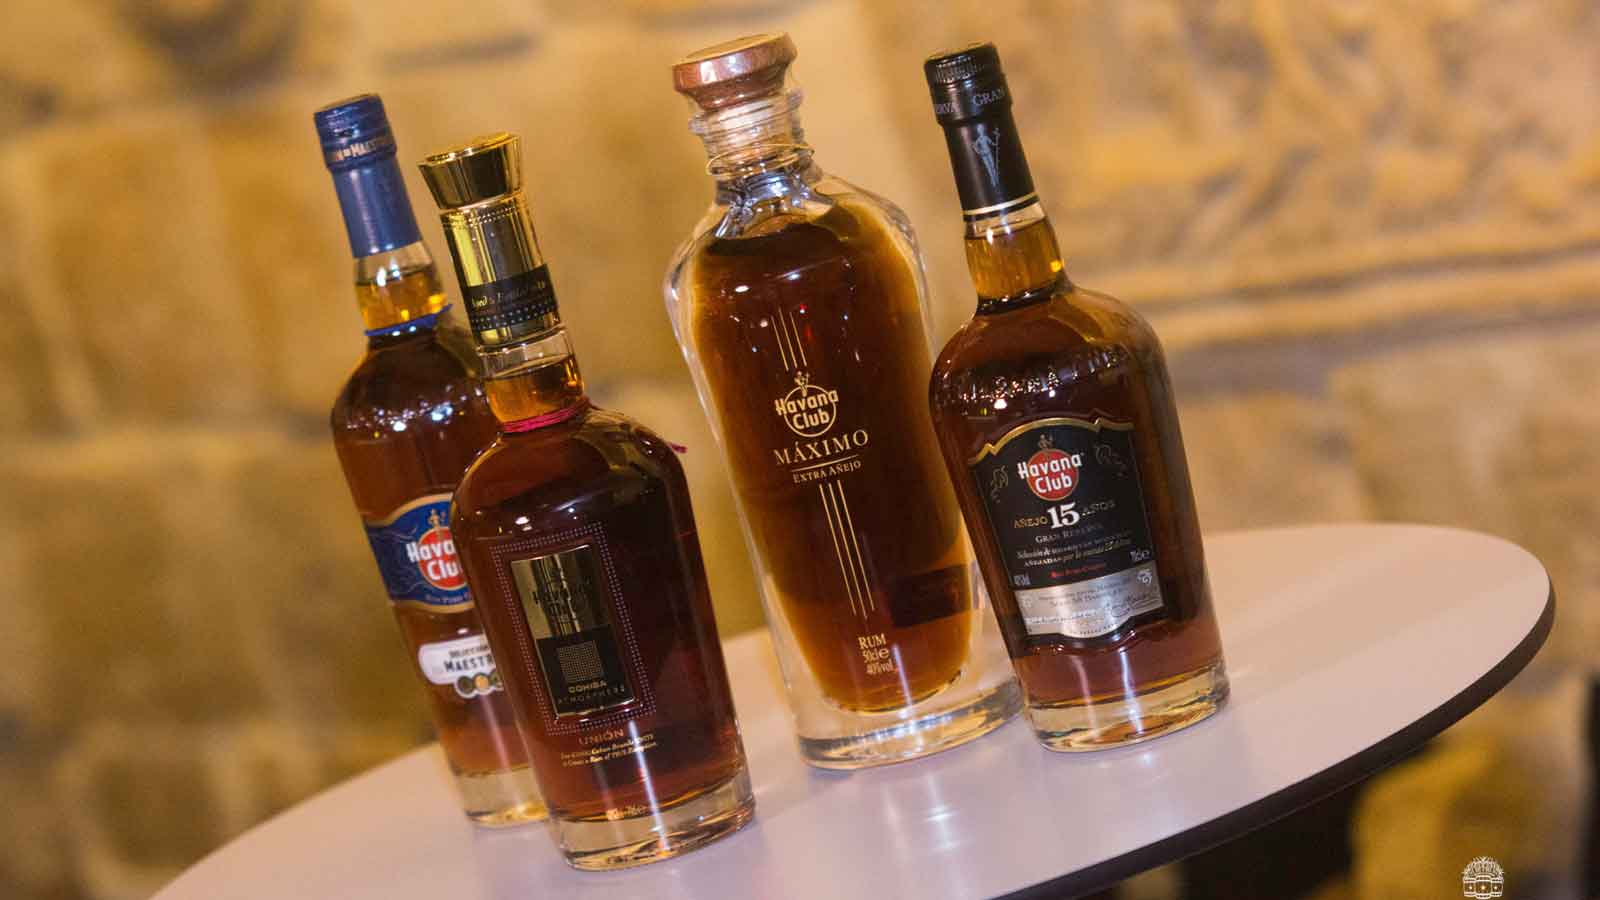 Havana Club presents an iconic collection of rums